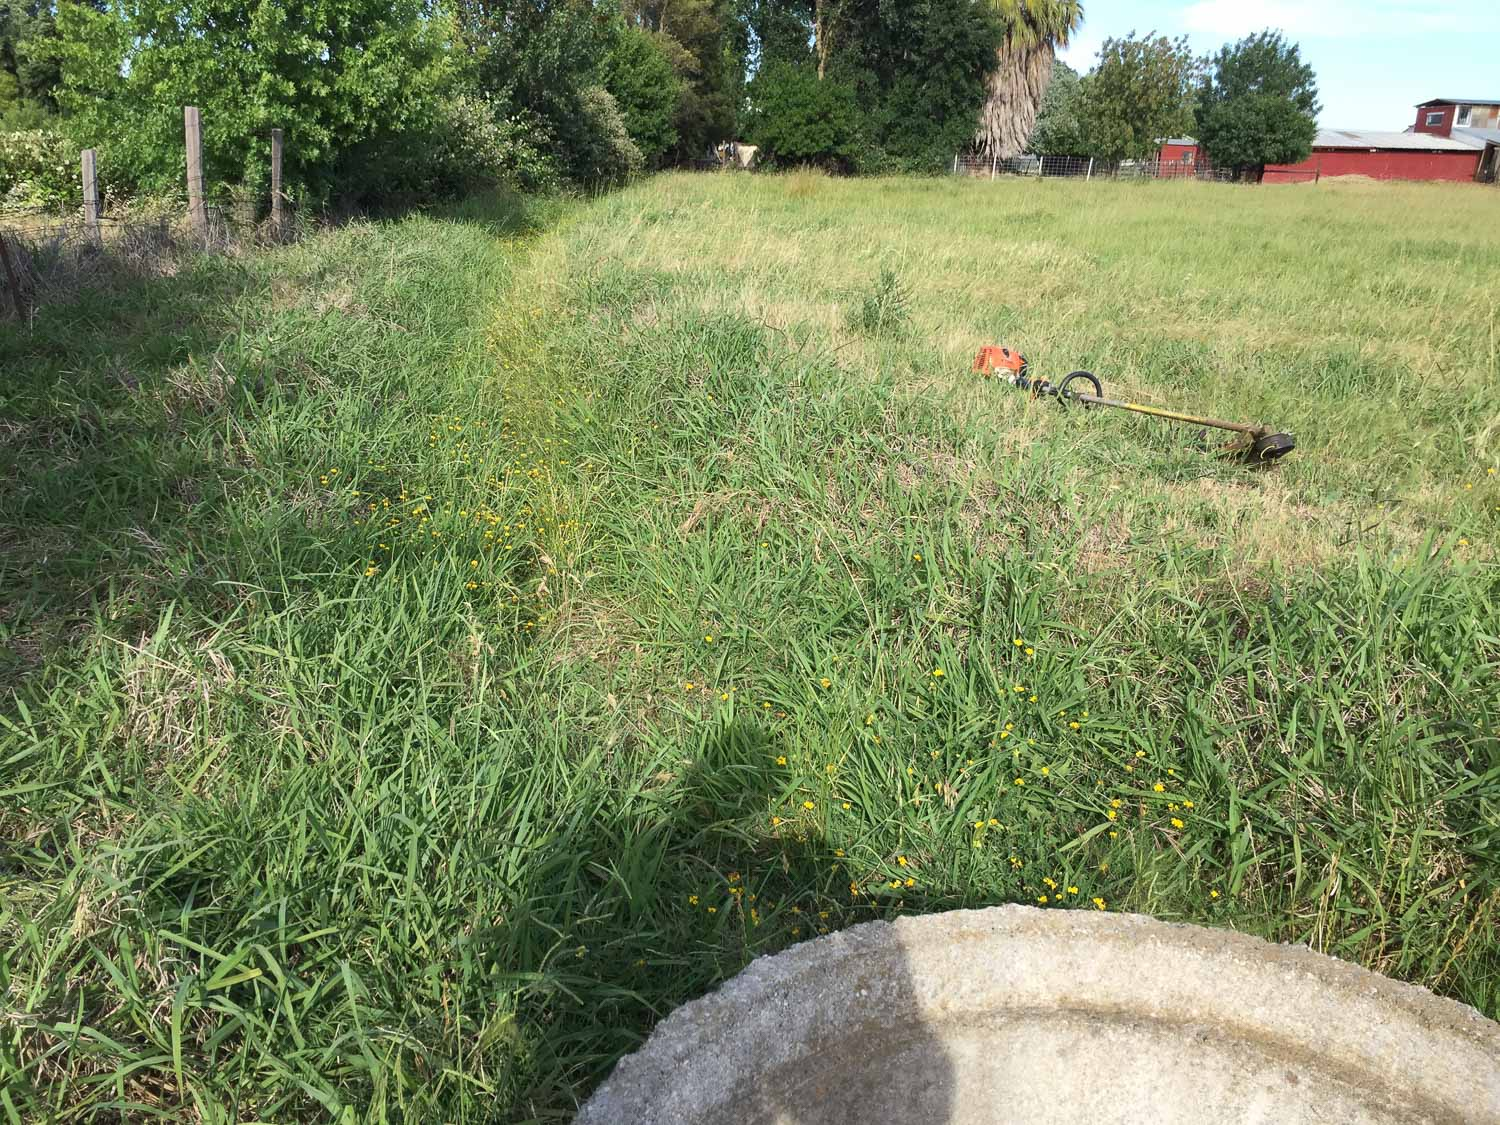 Irrigation ditch at end of pasture.